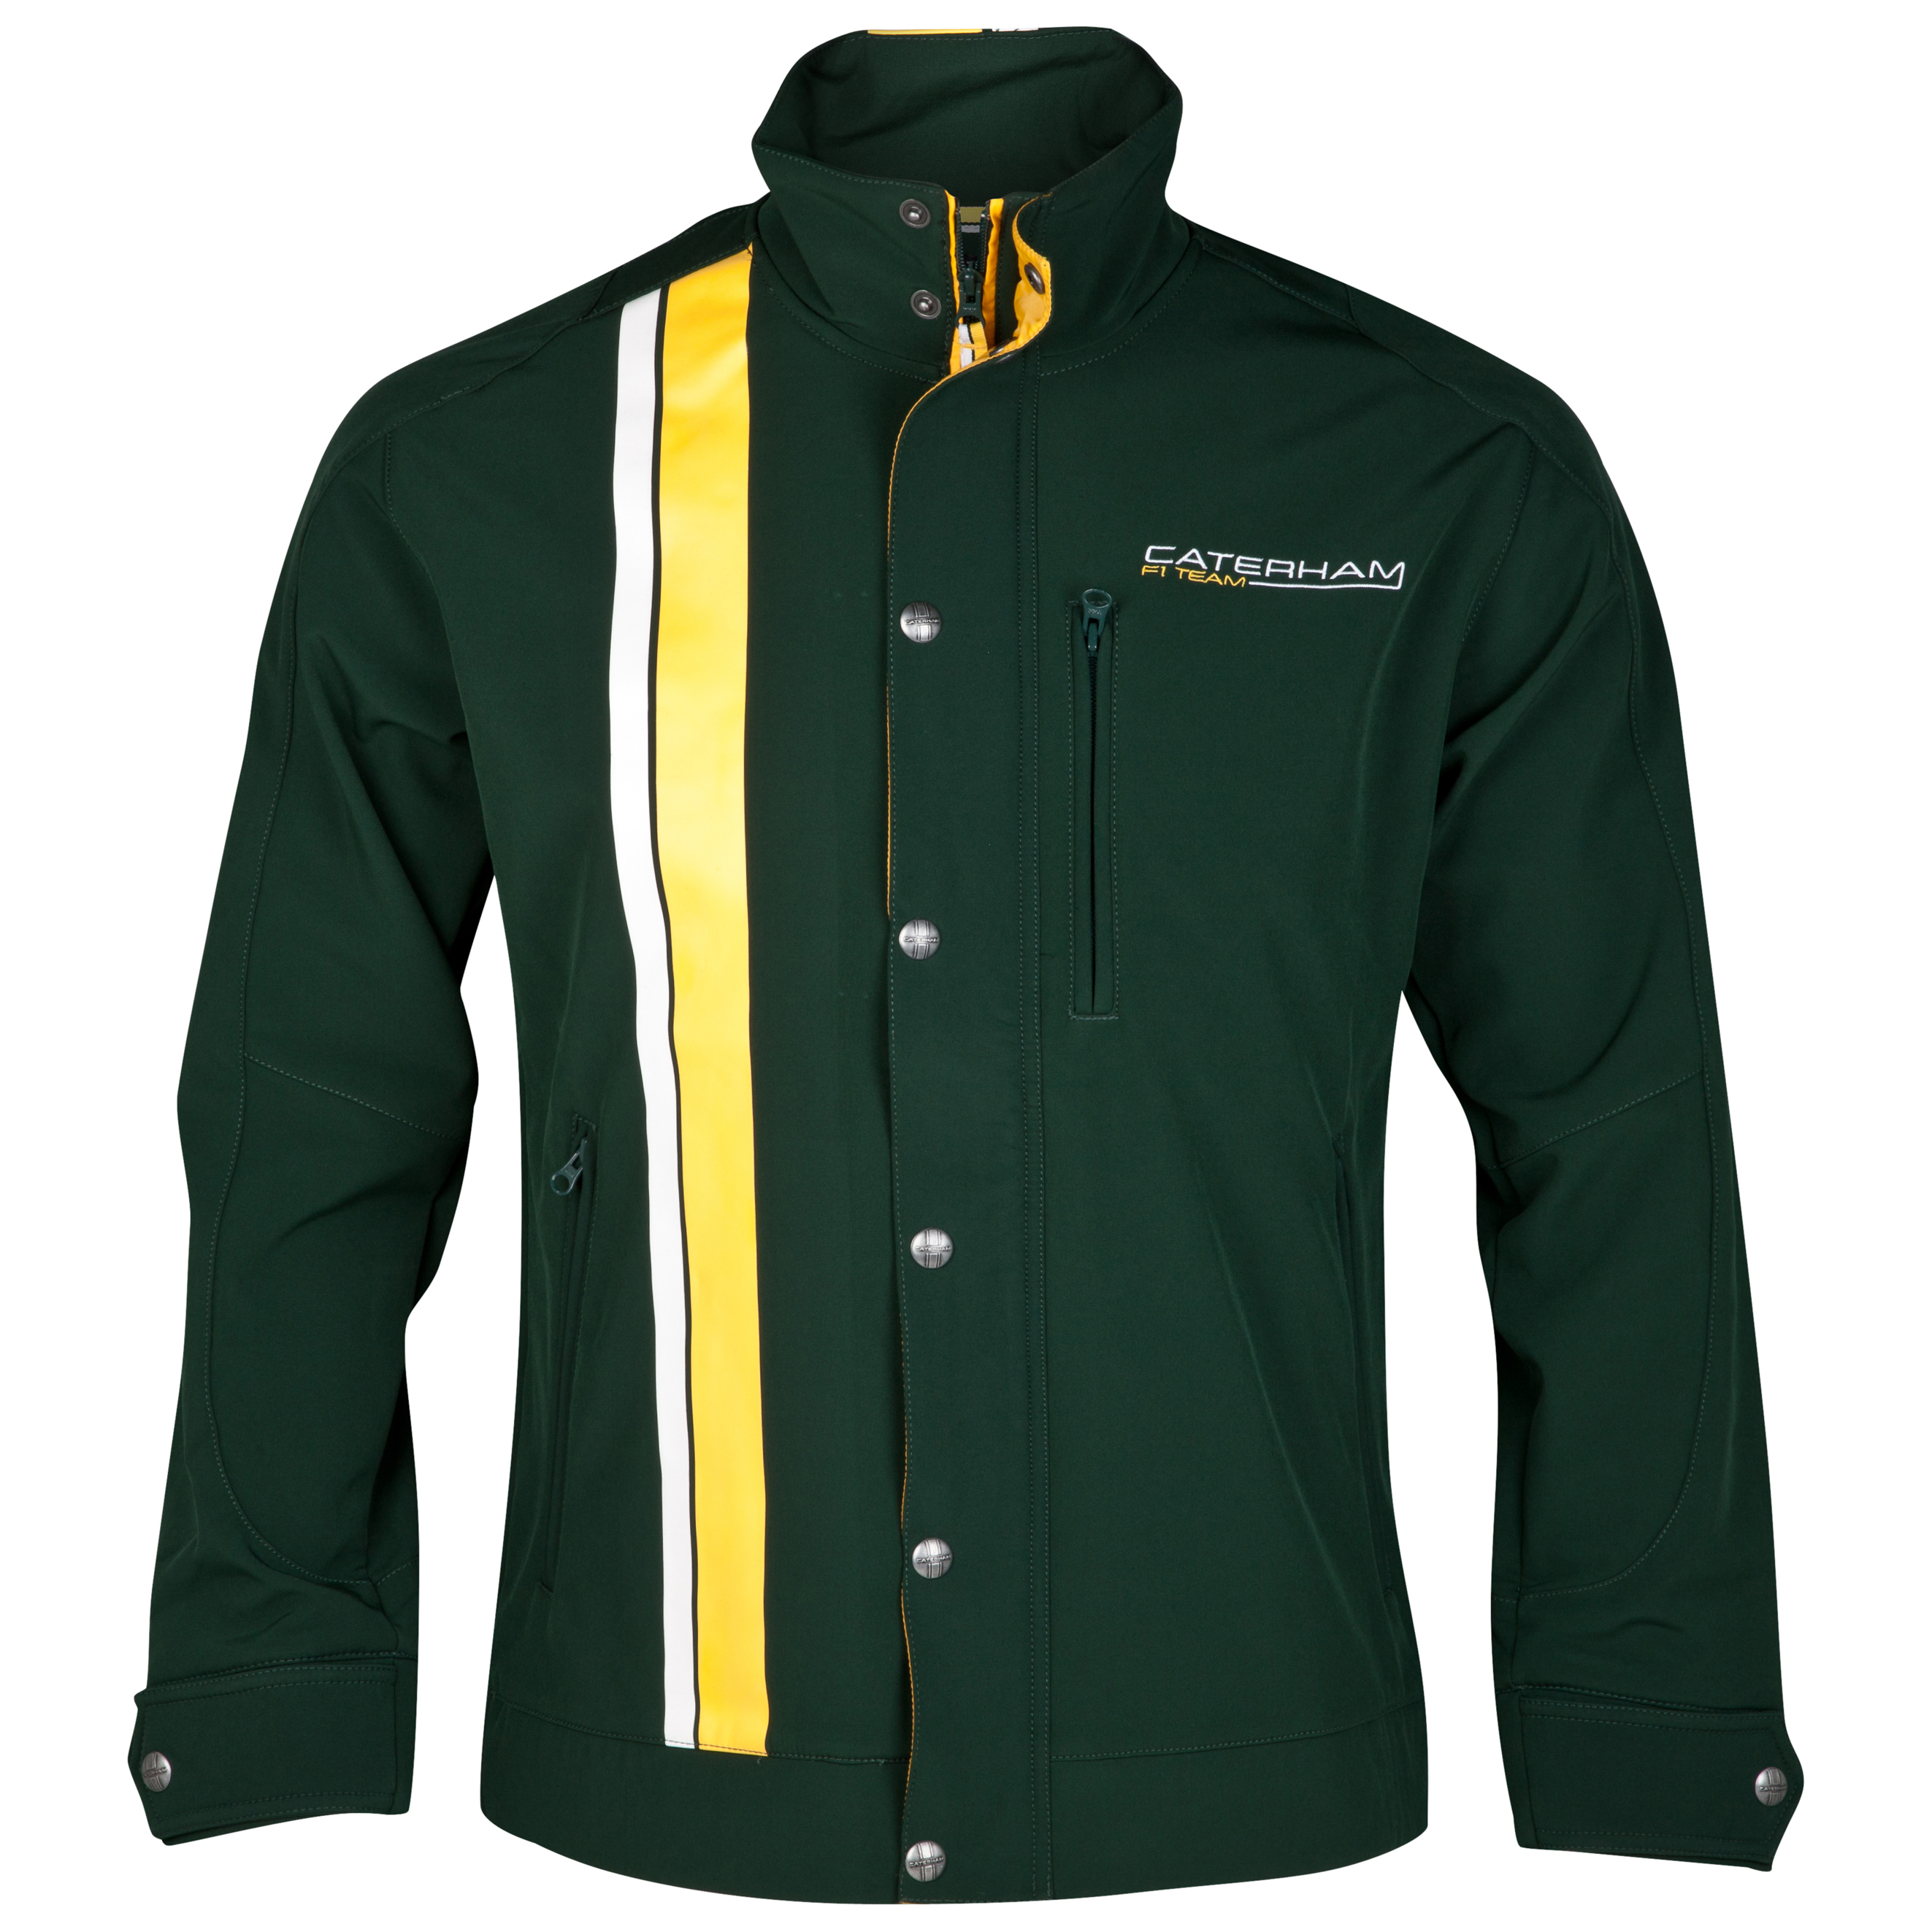 Caterham F1 Team Soft Shell Jacket